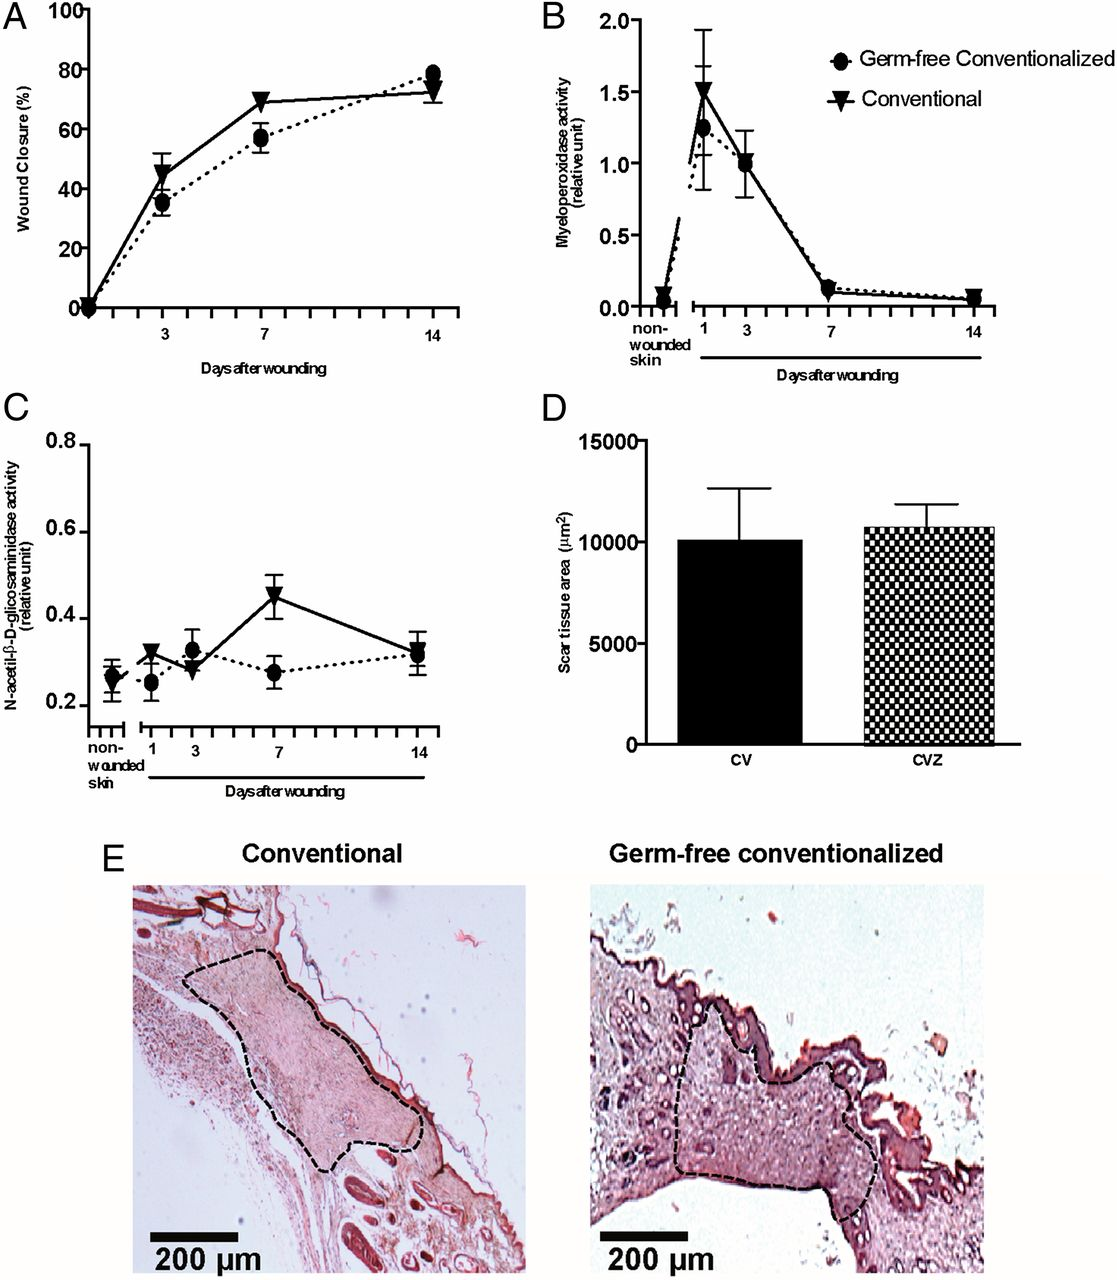 gf colonized mice restore wound healing to conventional mouse level